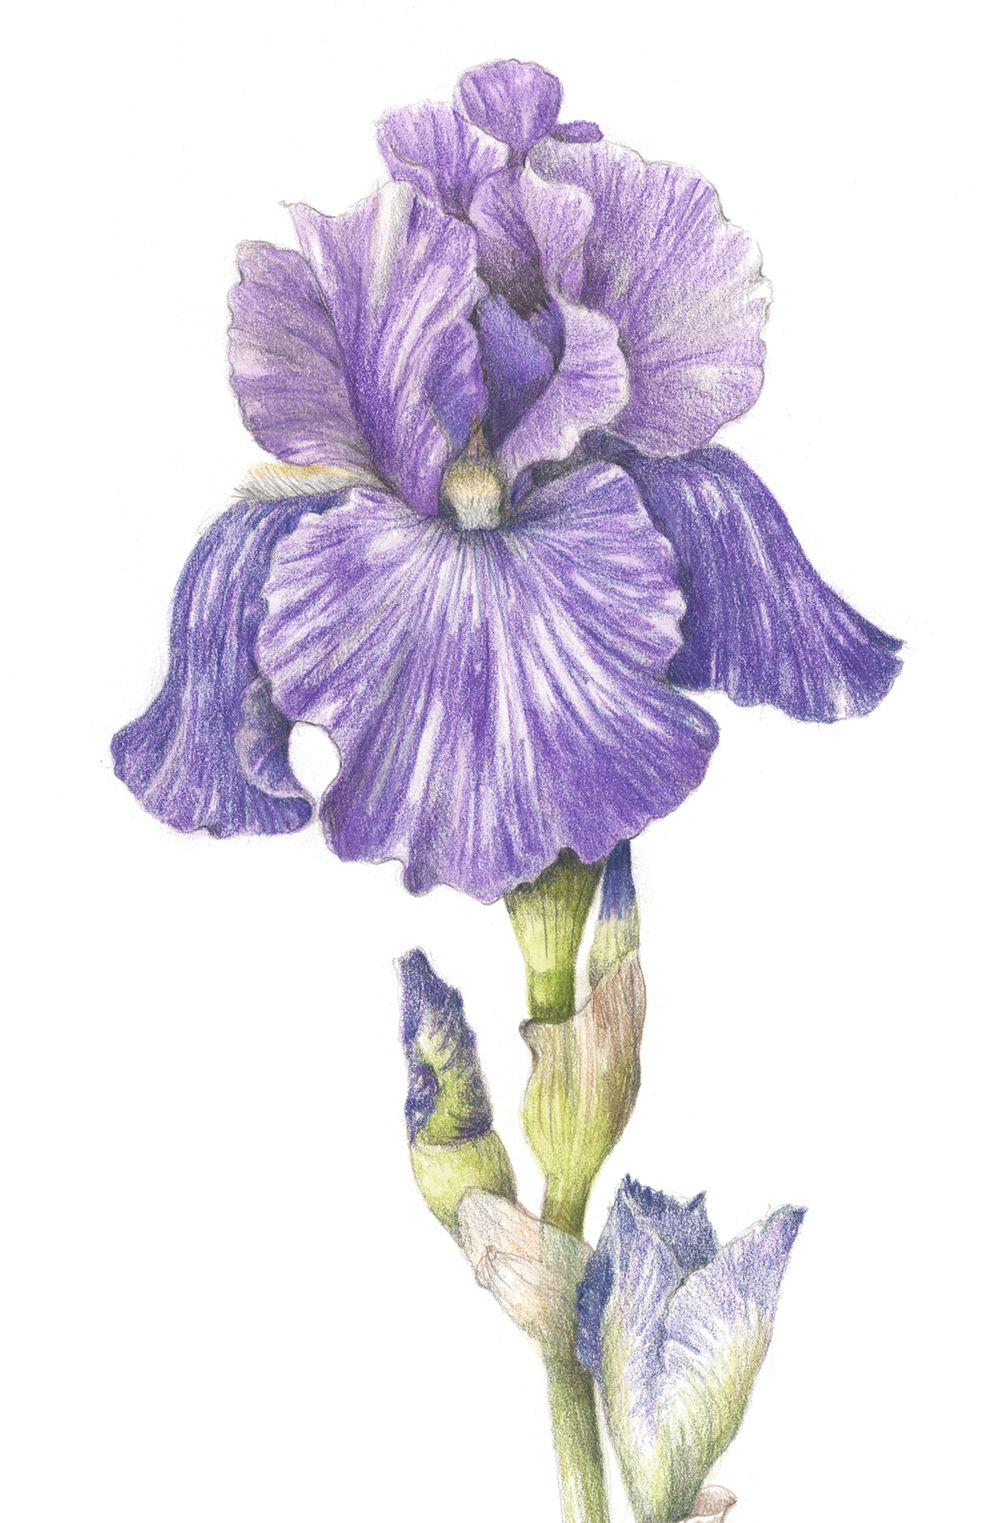 Bearded Iris From The Collection Of Botanical Illustrations Of